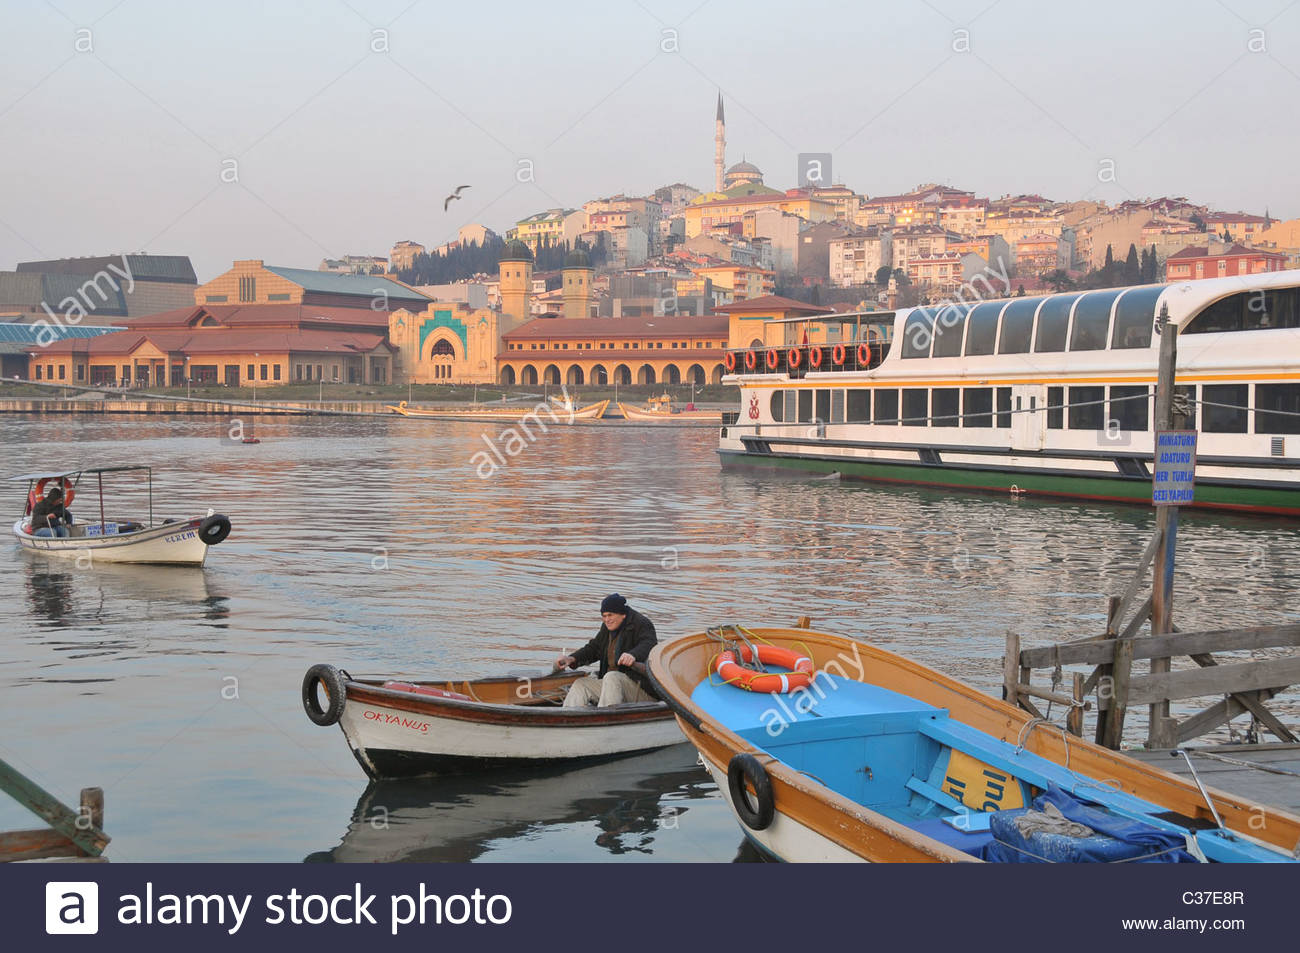 A boatman rowing across the Golden Horn near Eyüp. Such boatmen are still ferrying people across the Golden - Stock Image